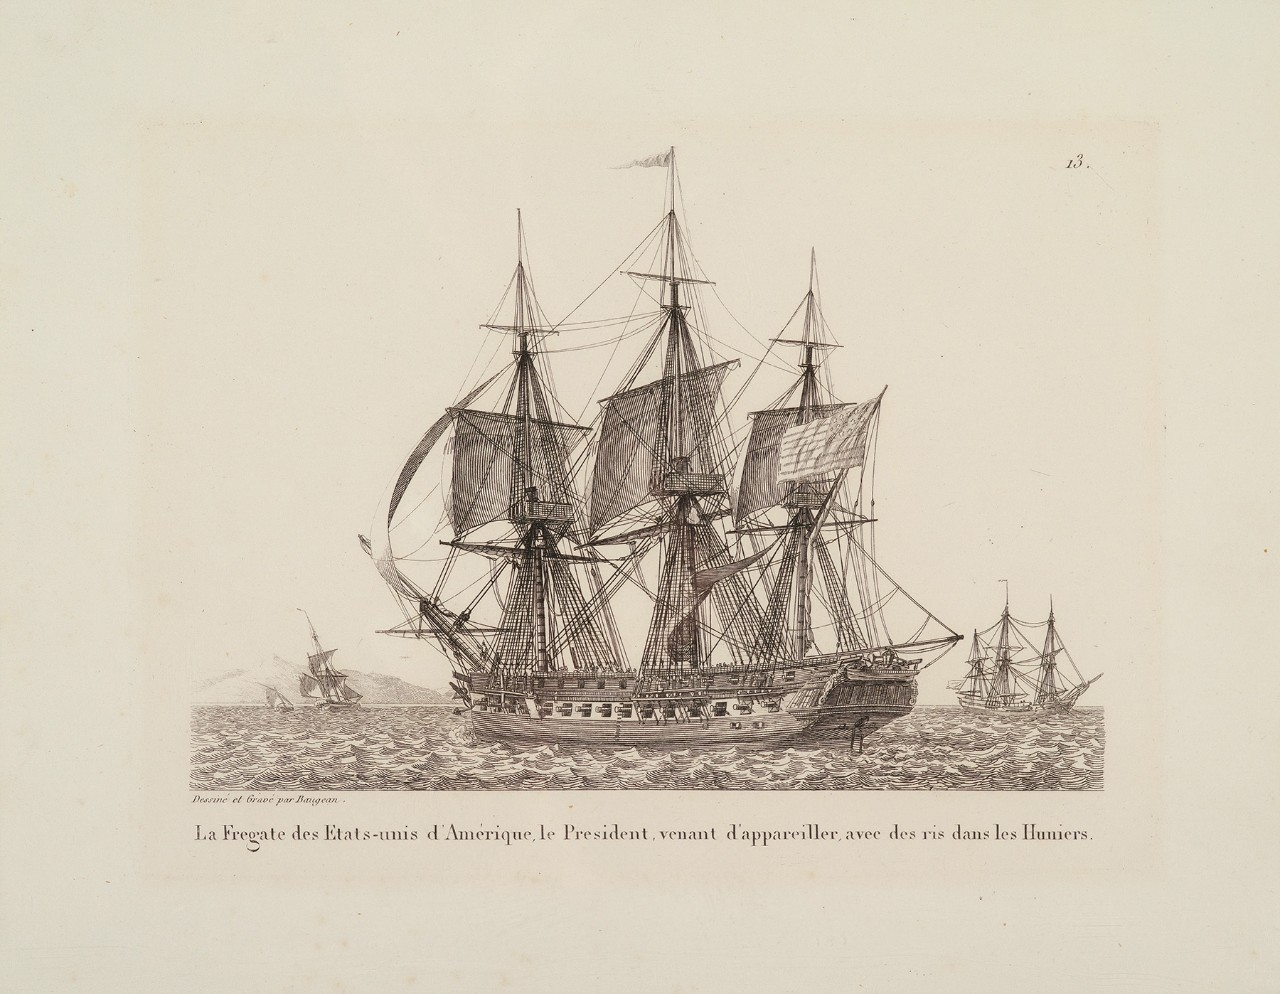 Portside view of a sailing ship at anchor, three other ship in the background